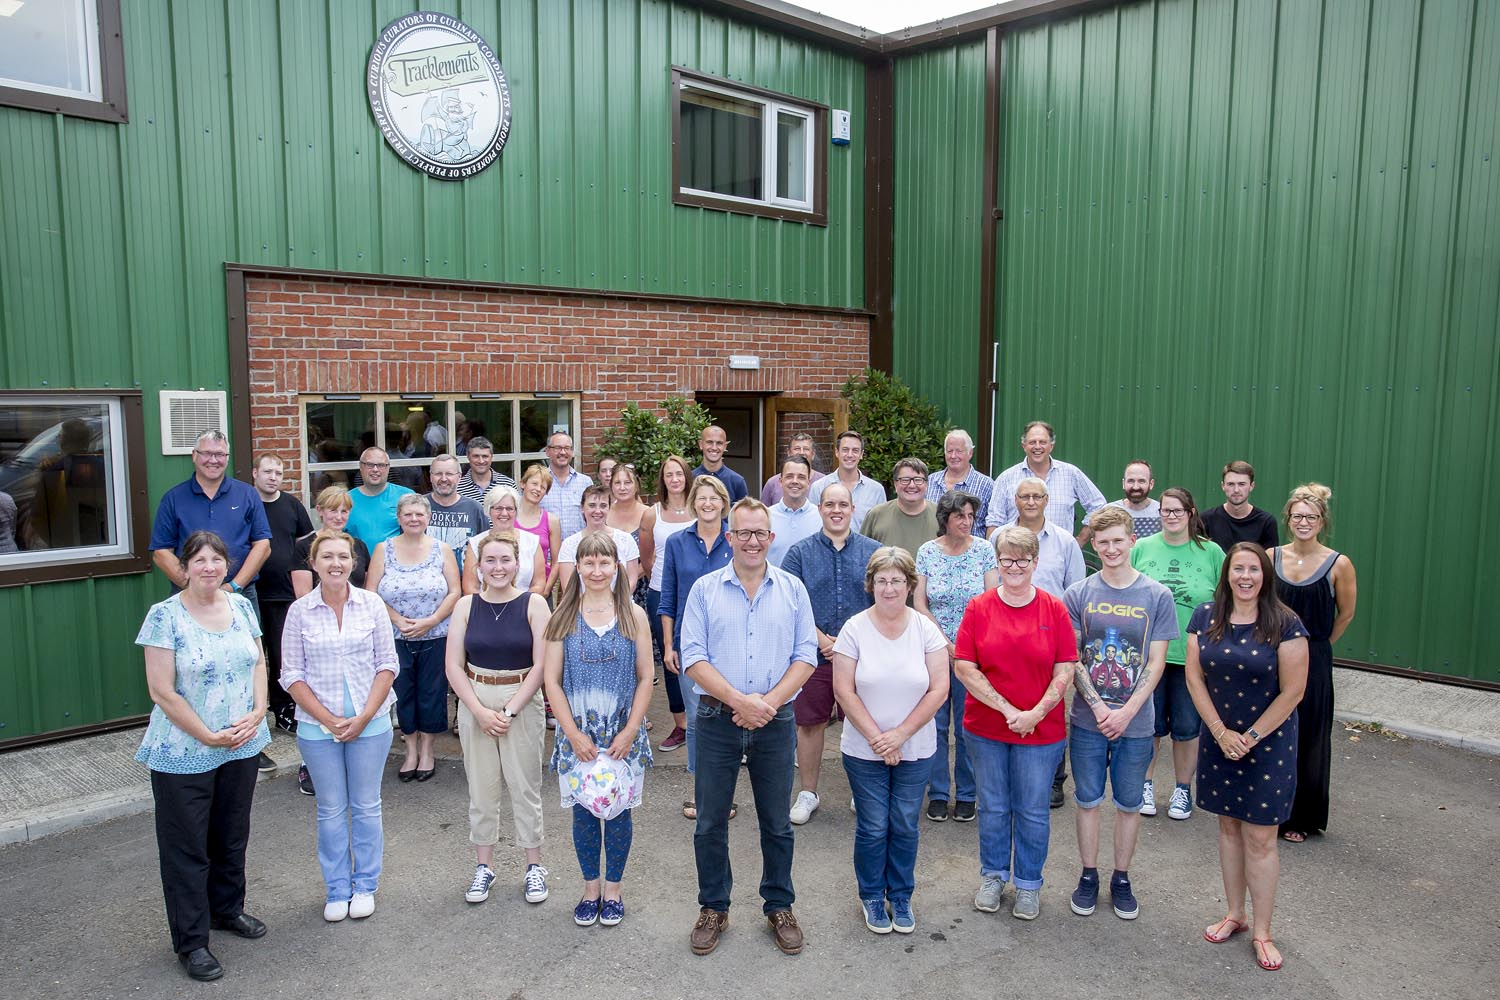 Tracklements Staff Photo